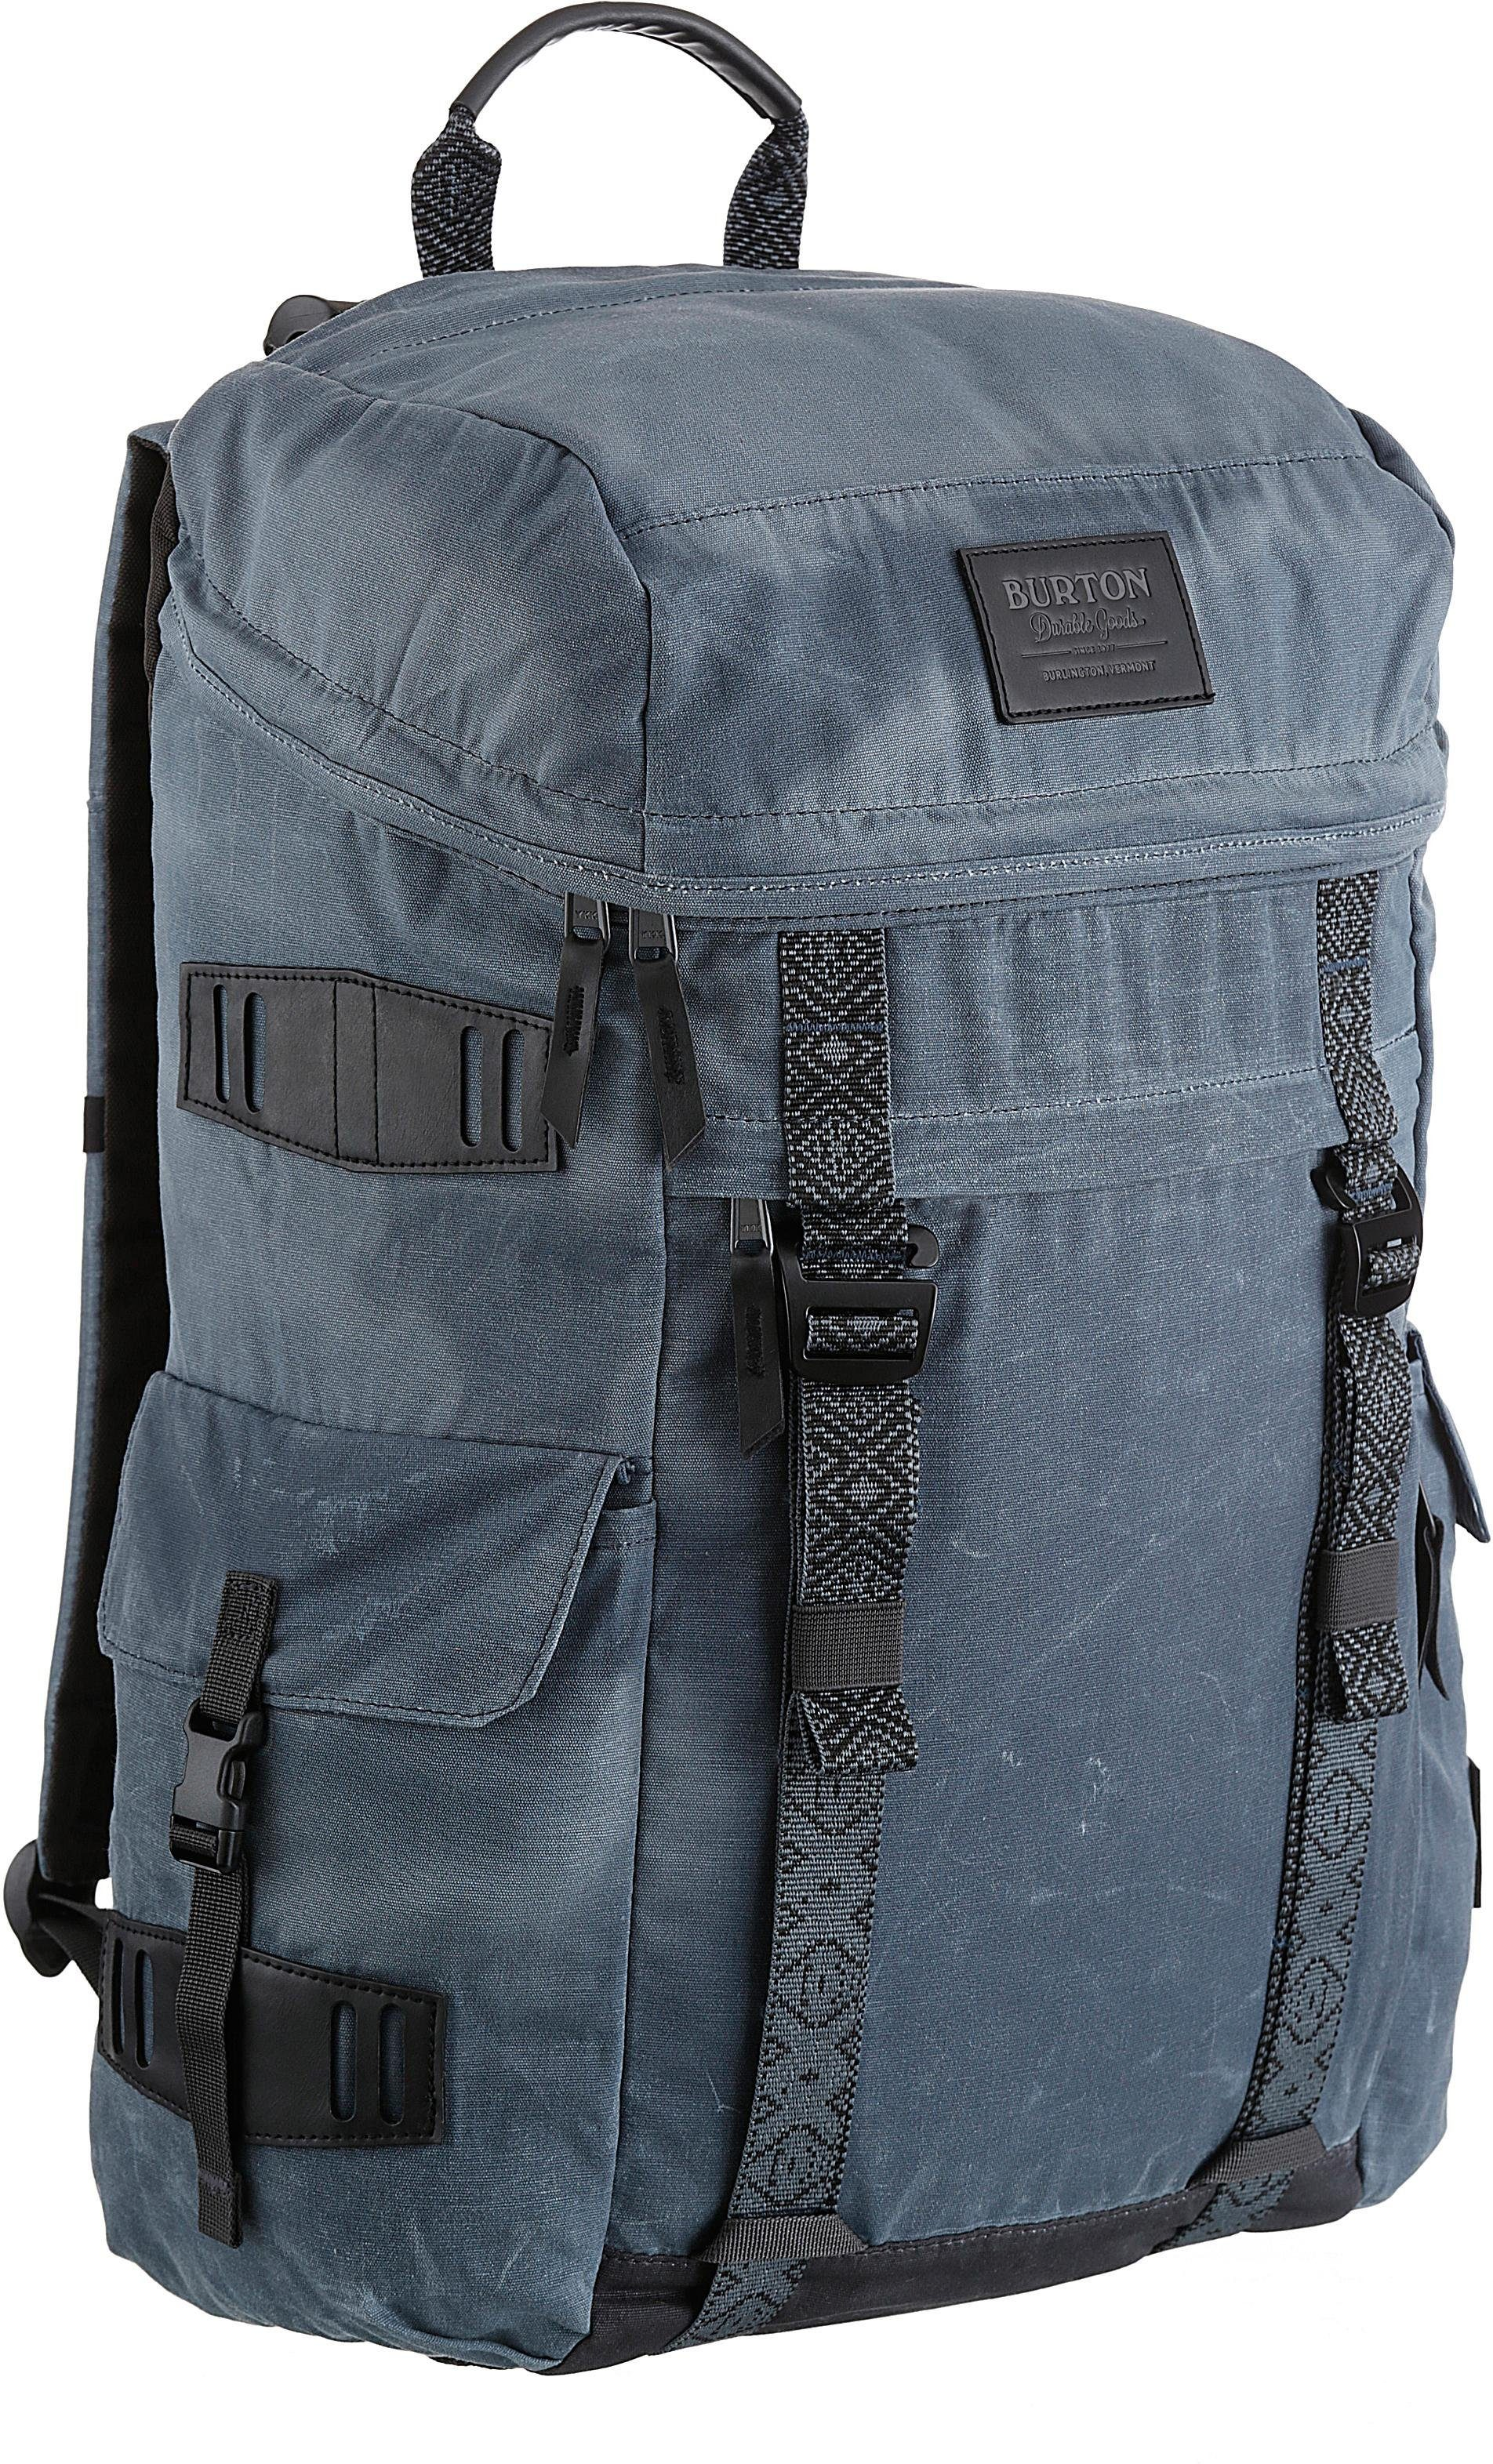 BURTON DG Laptoprucksack »Annex, Grey Heather« | OTTO